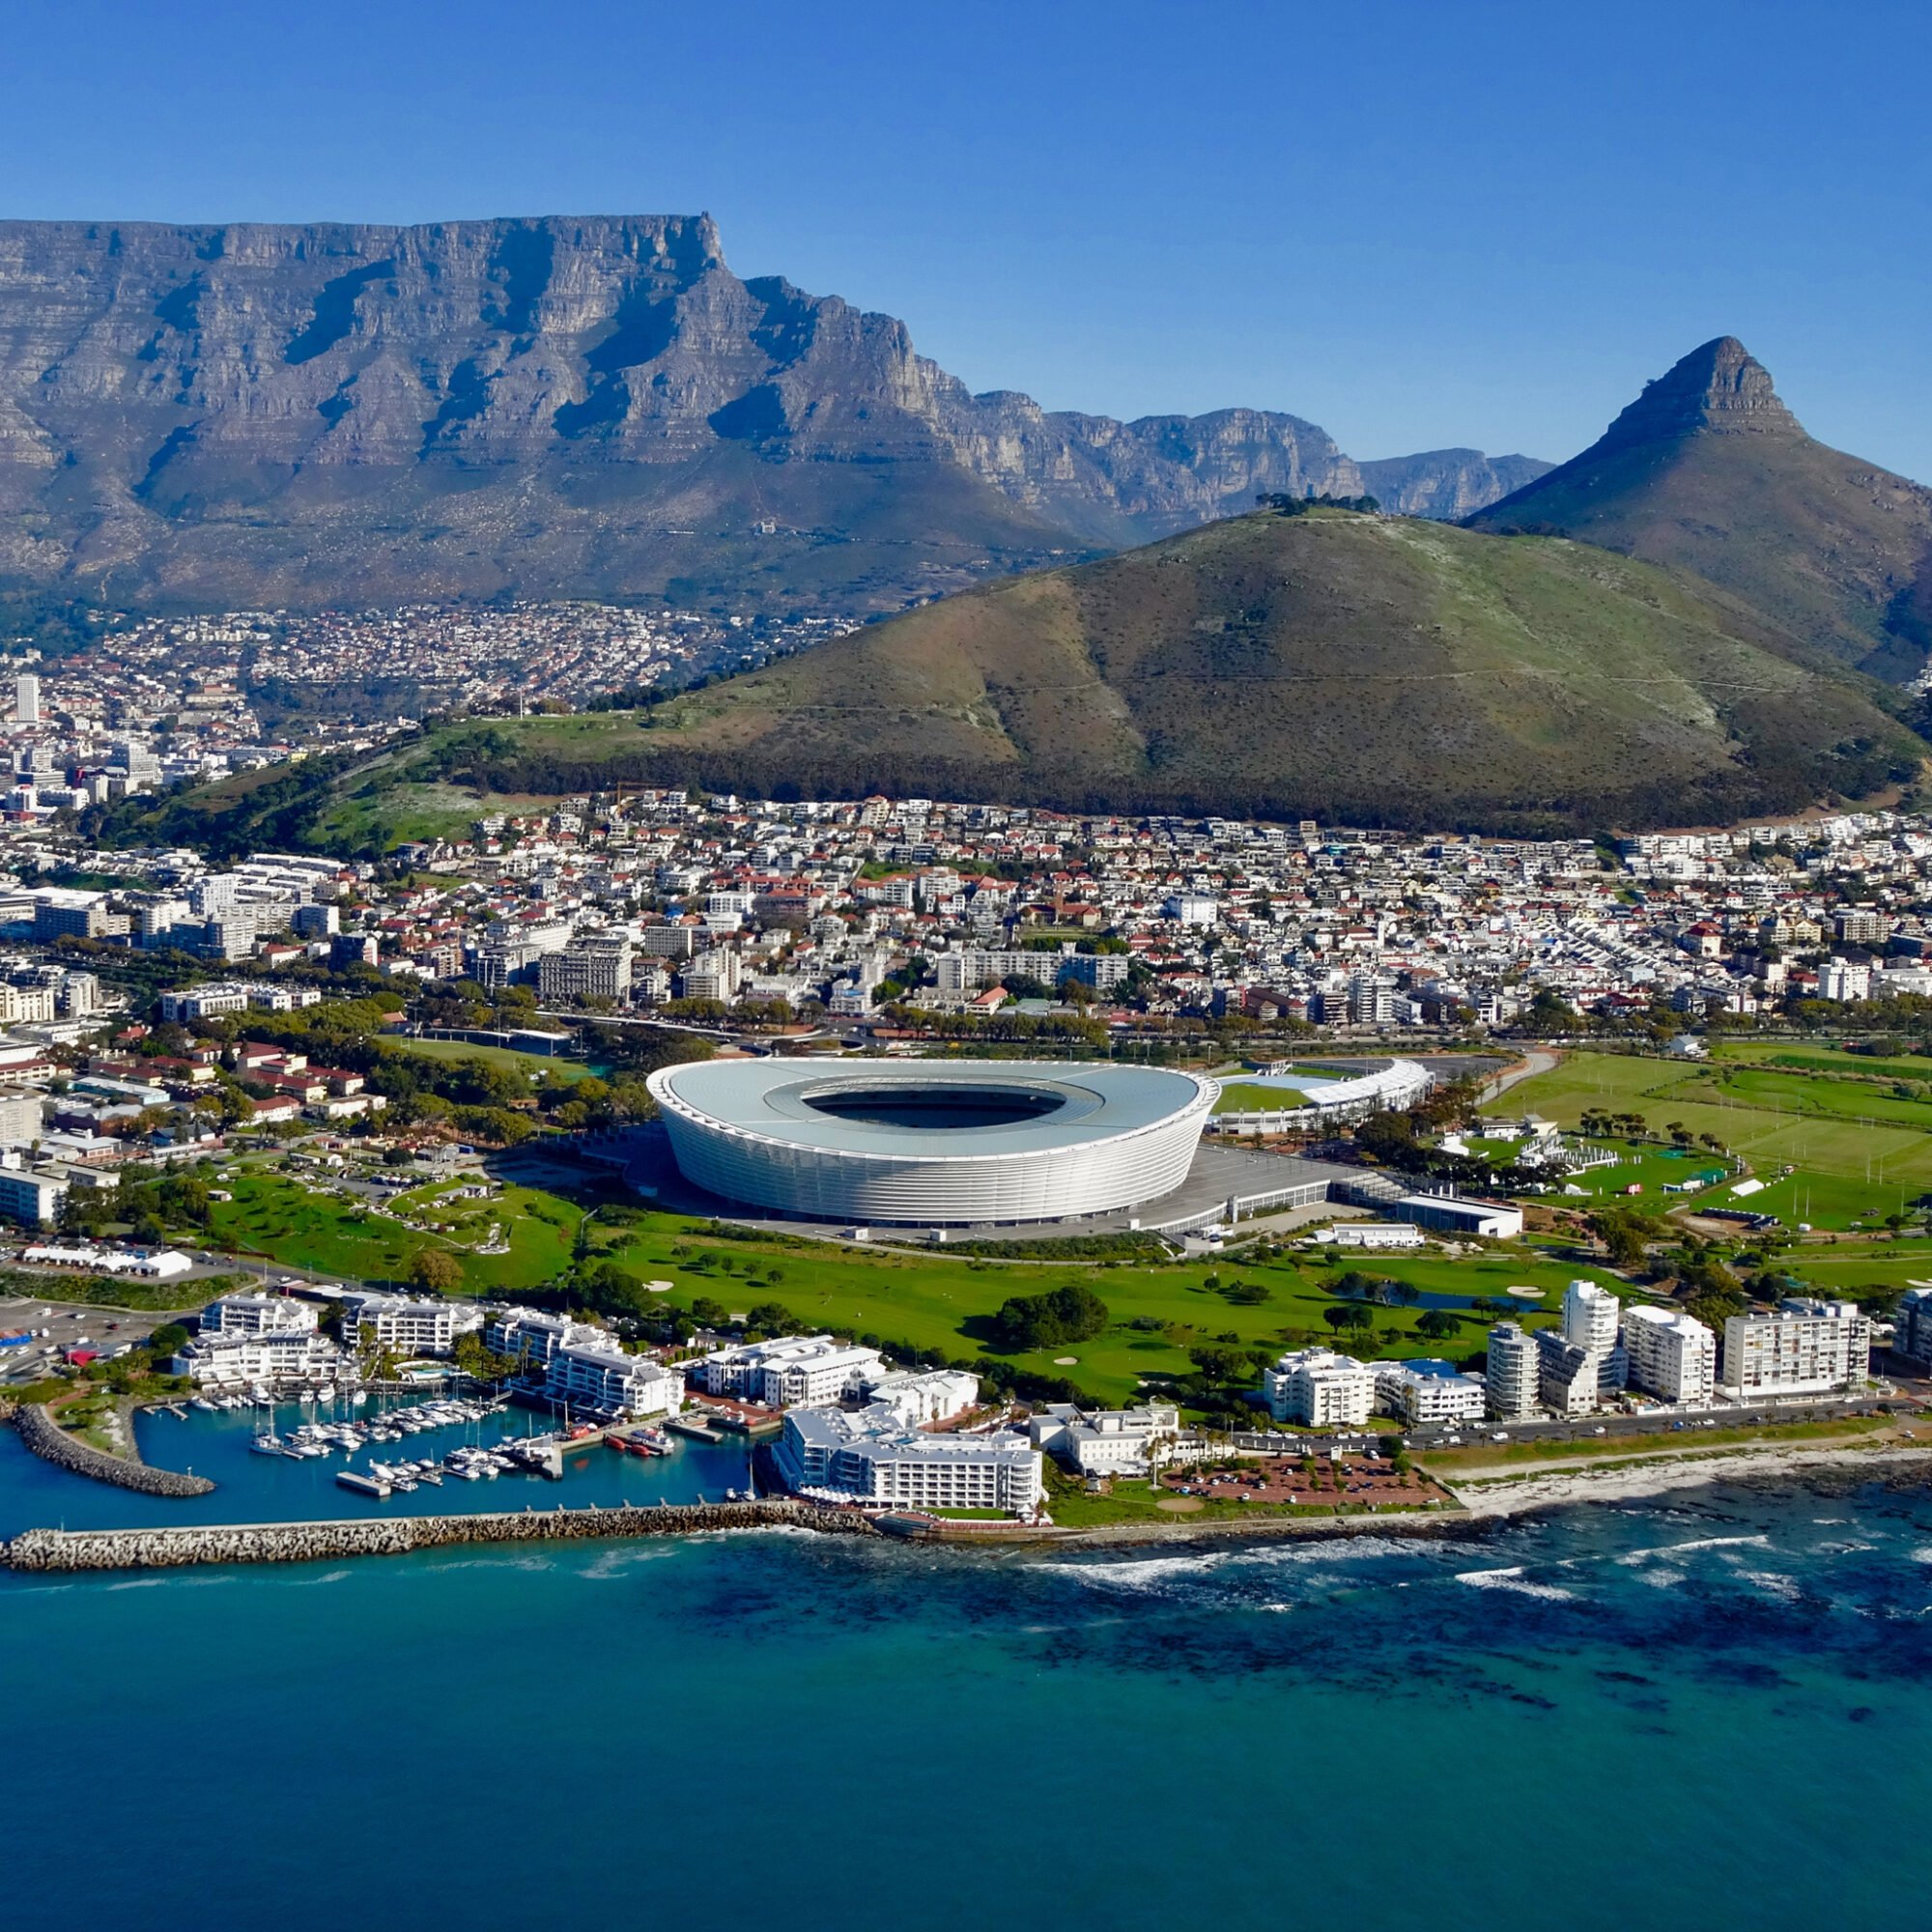 Arial view of Cape Town in South Africa.